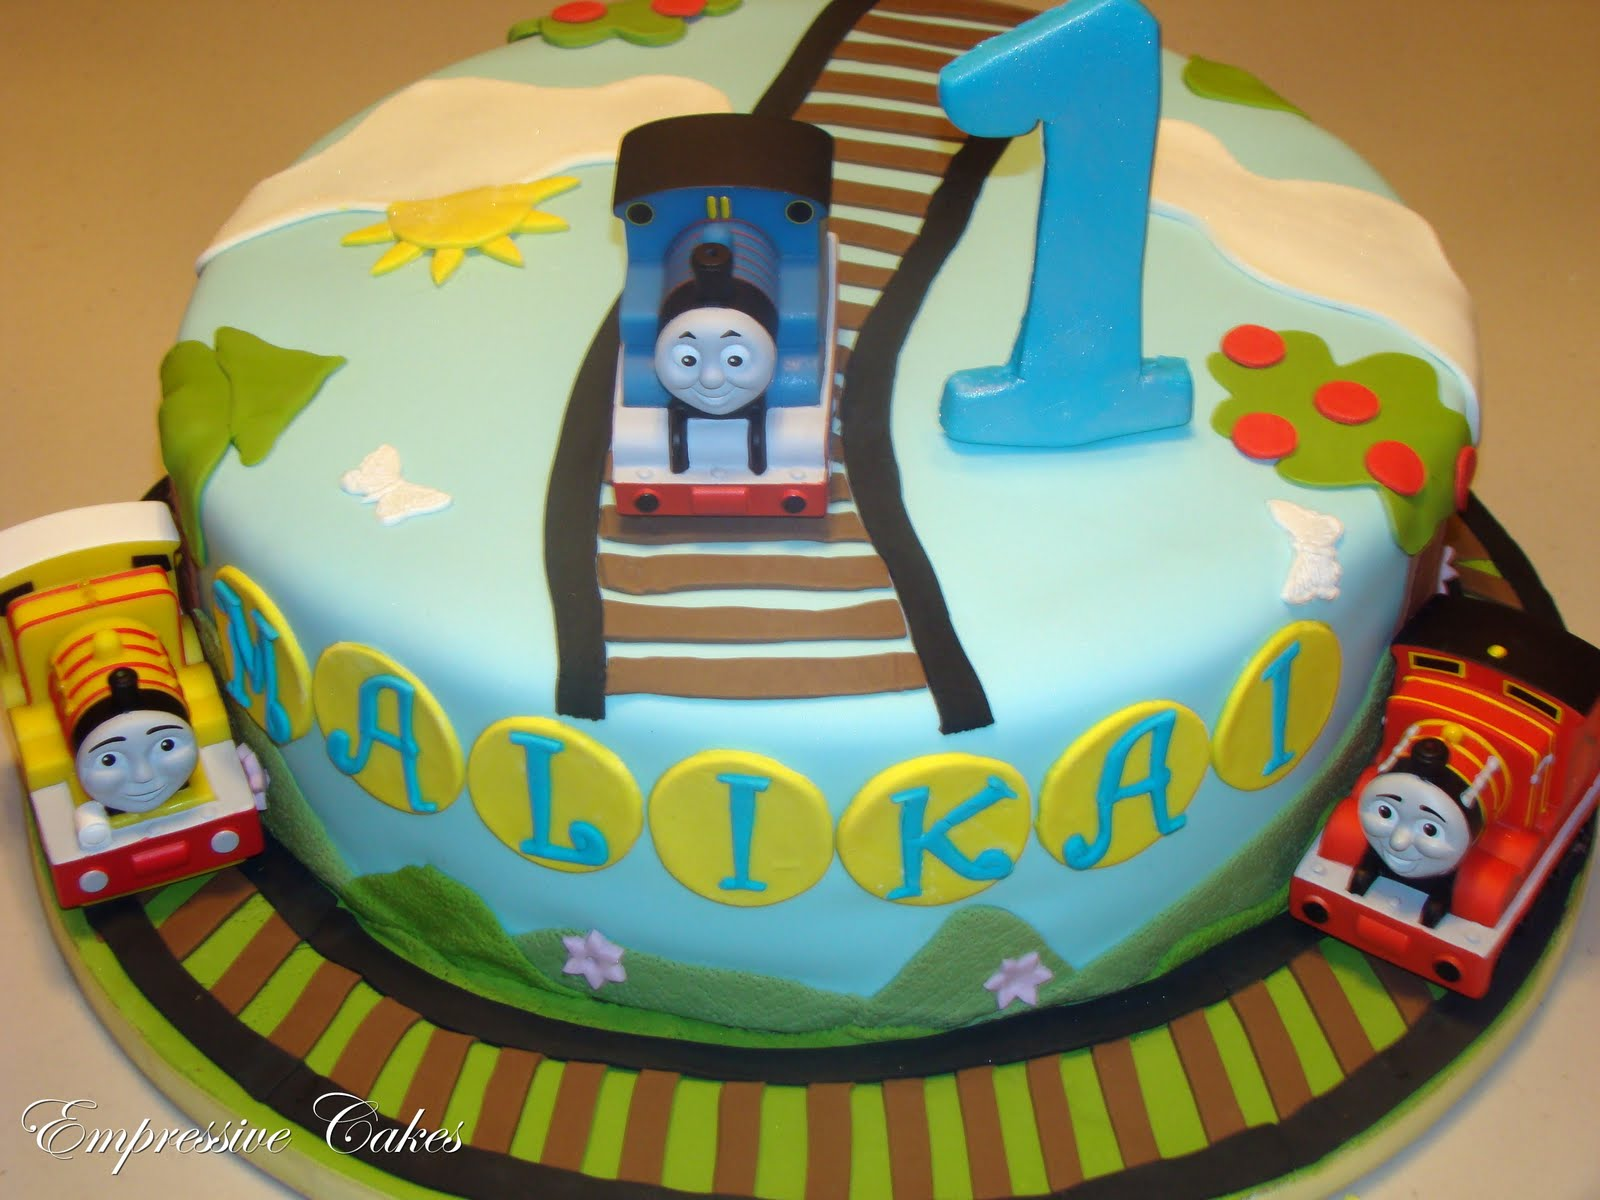 cake maker in battersea london | Etoile Bakery